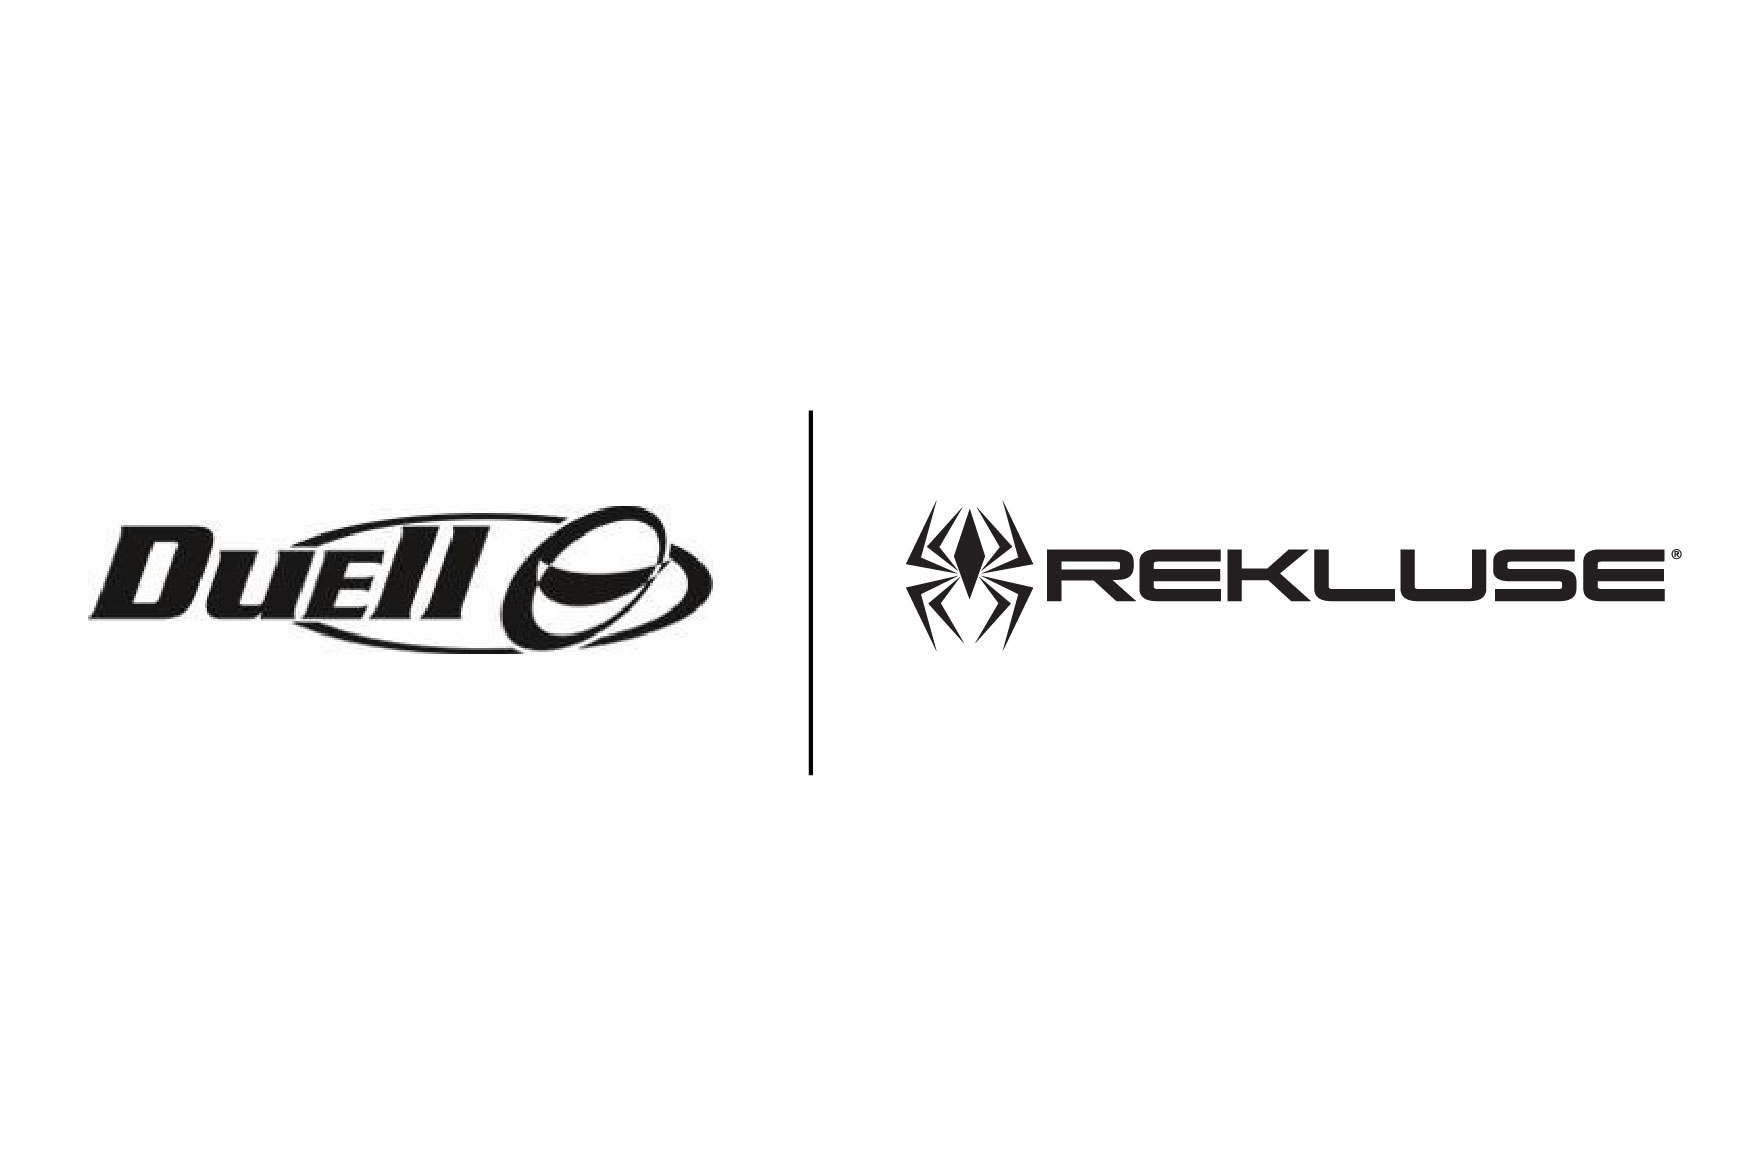 Rekluse and Duell logo - blog template graphic 2X